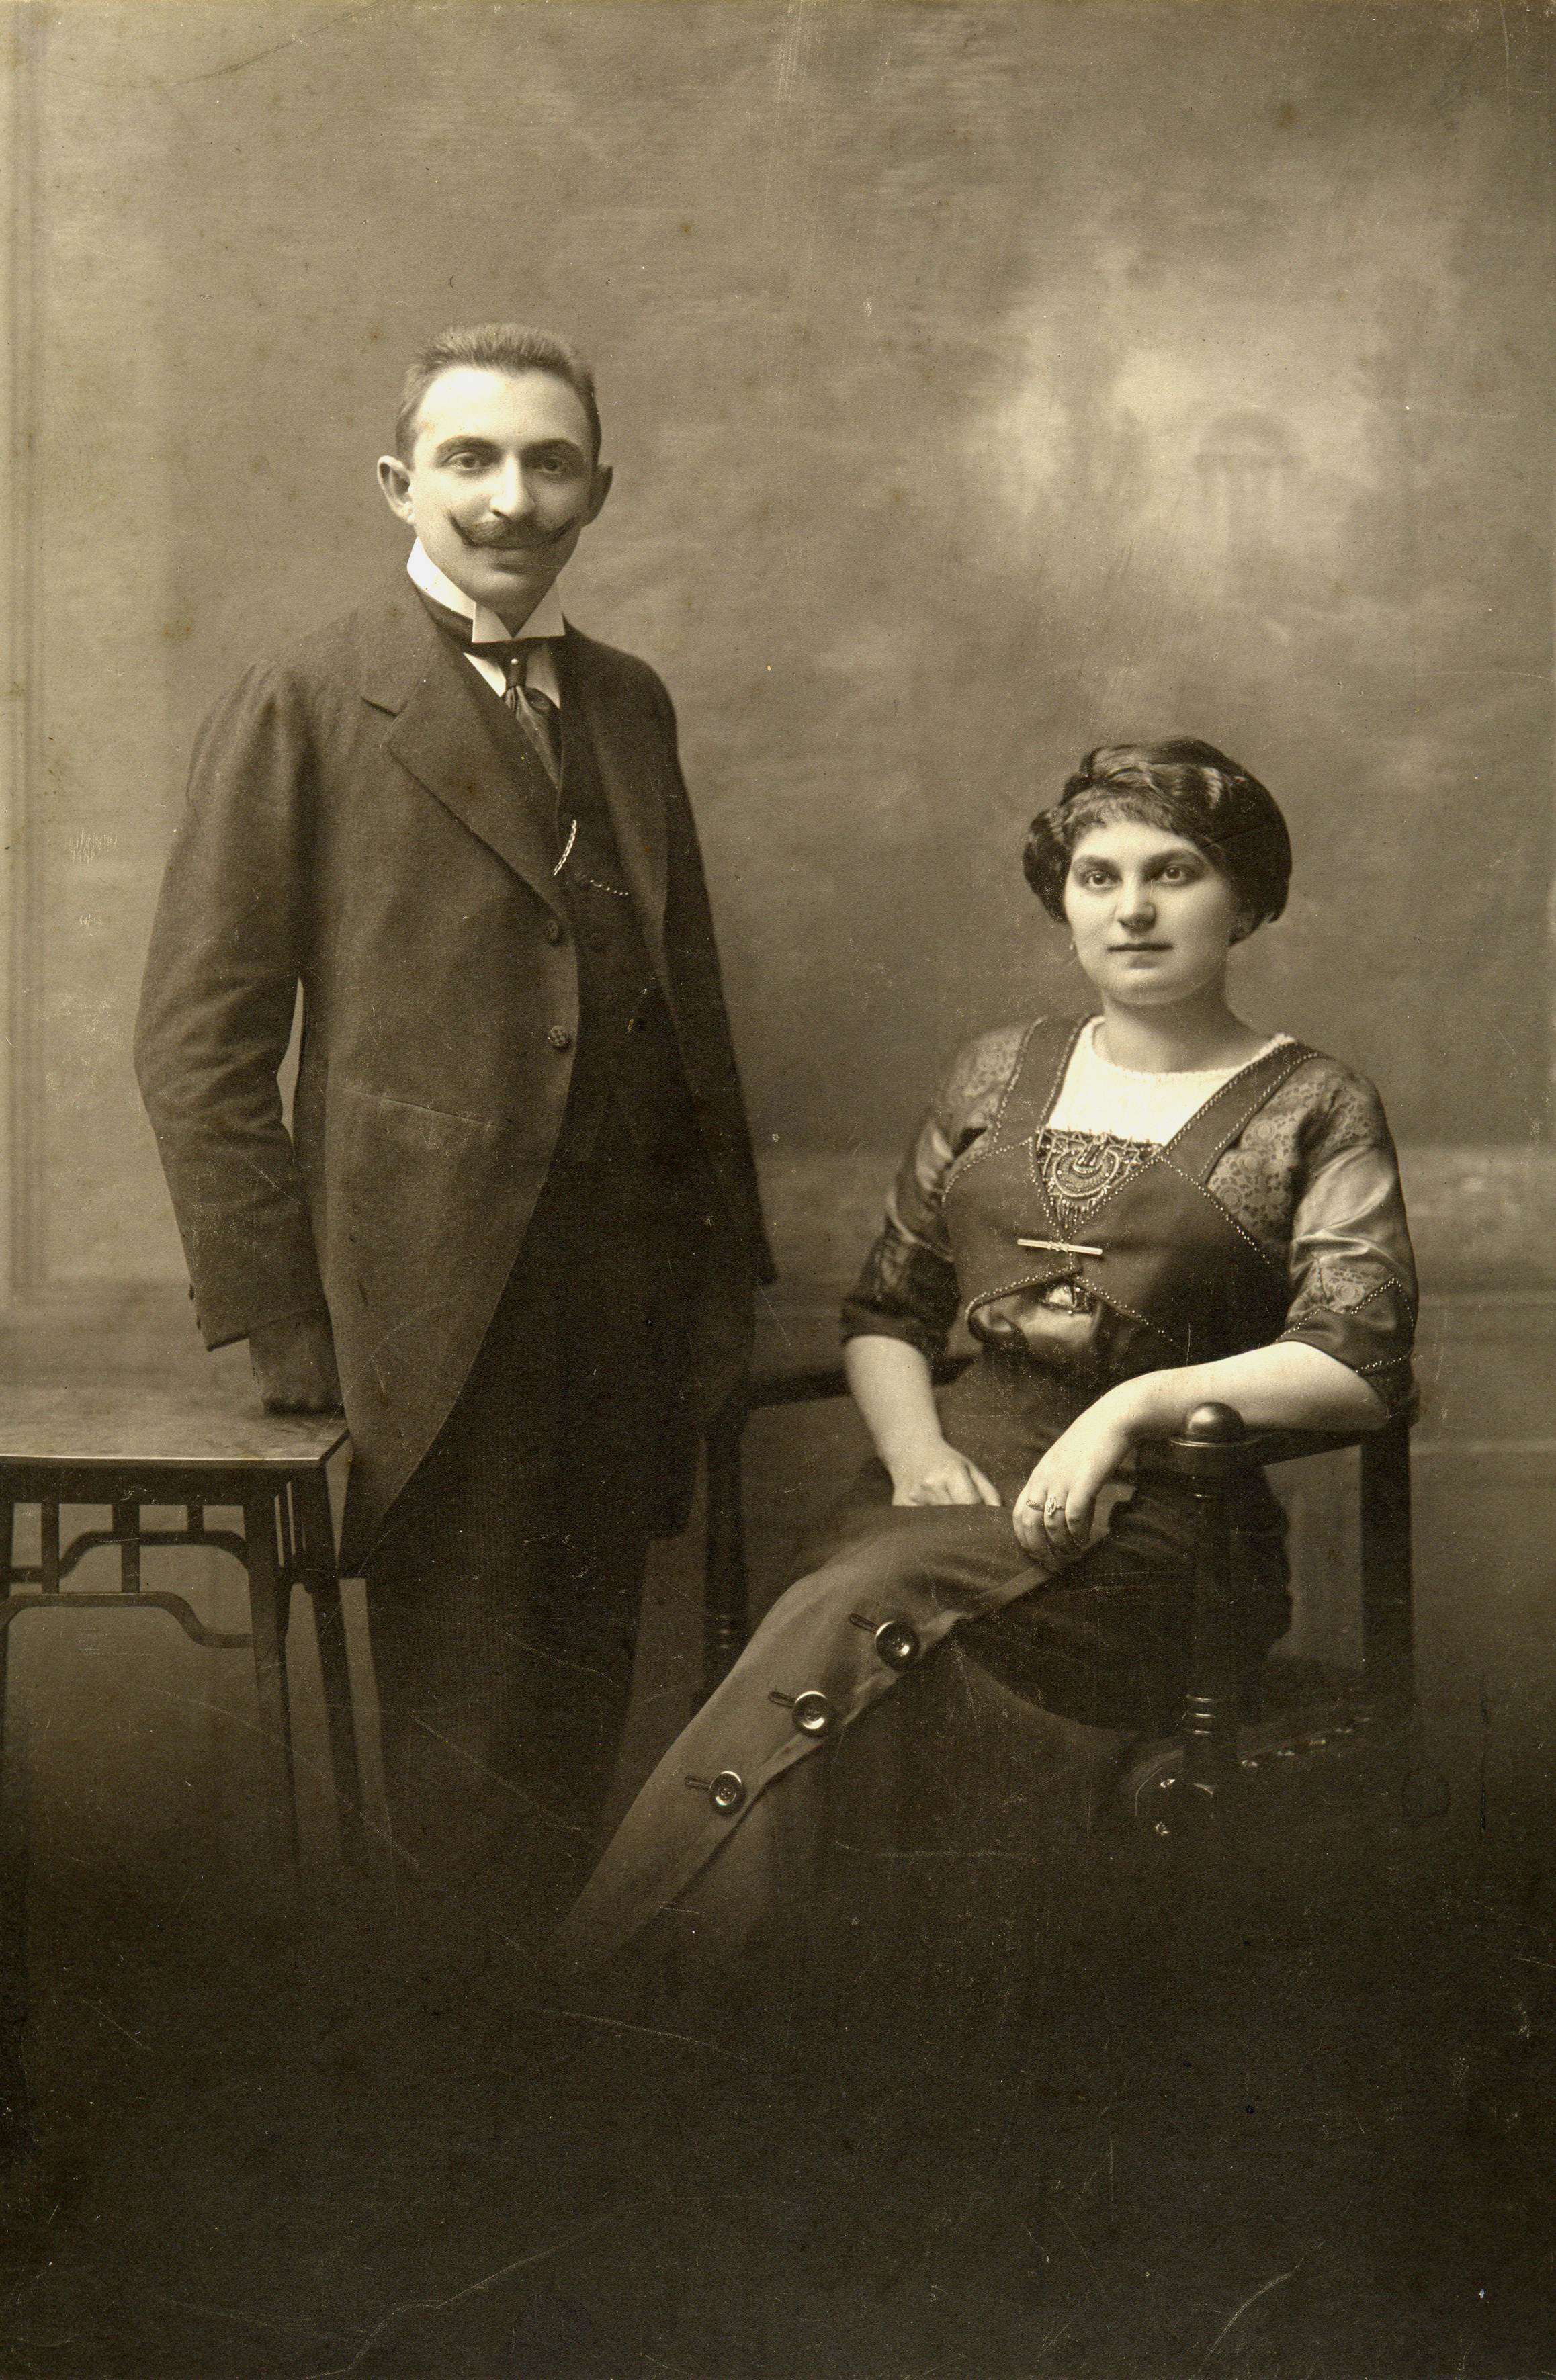 Arnost Brod and his wife Olga